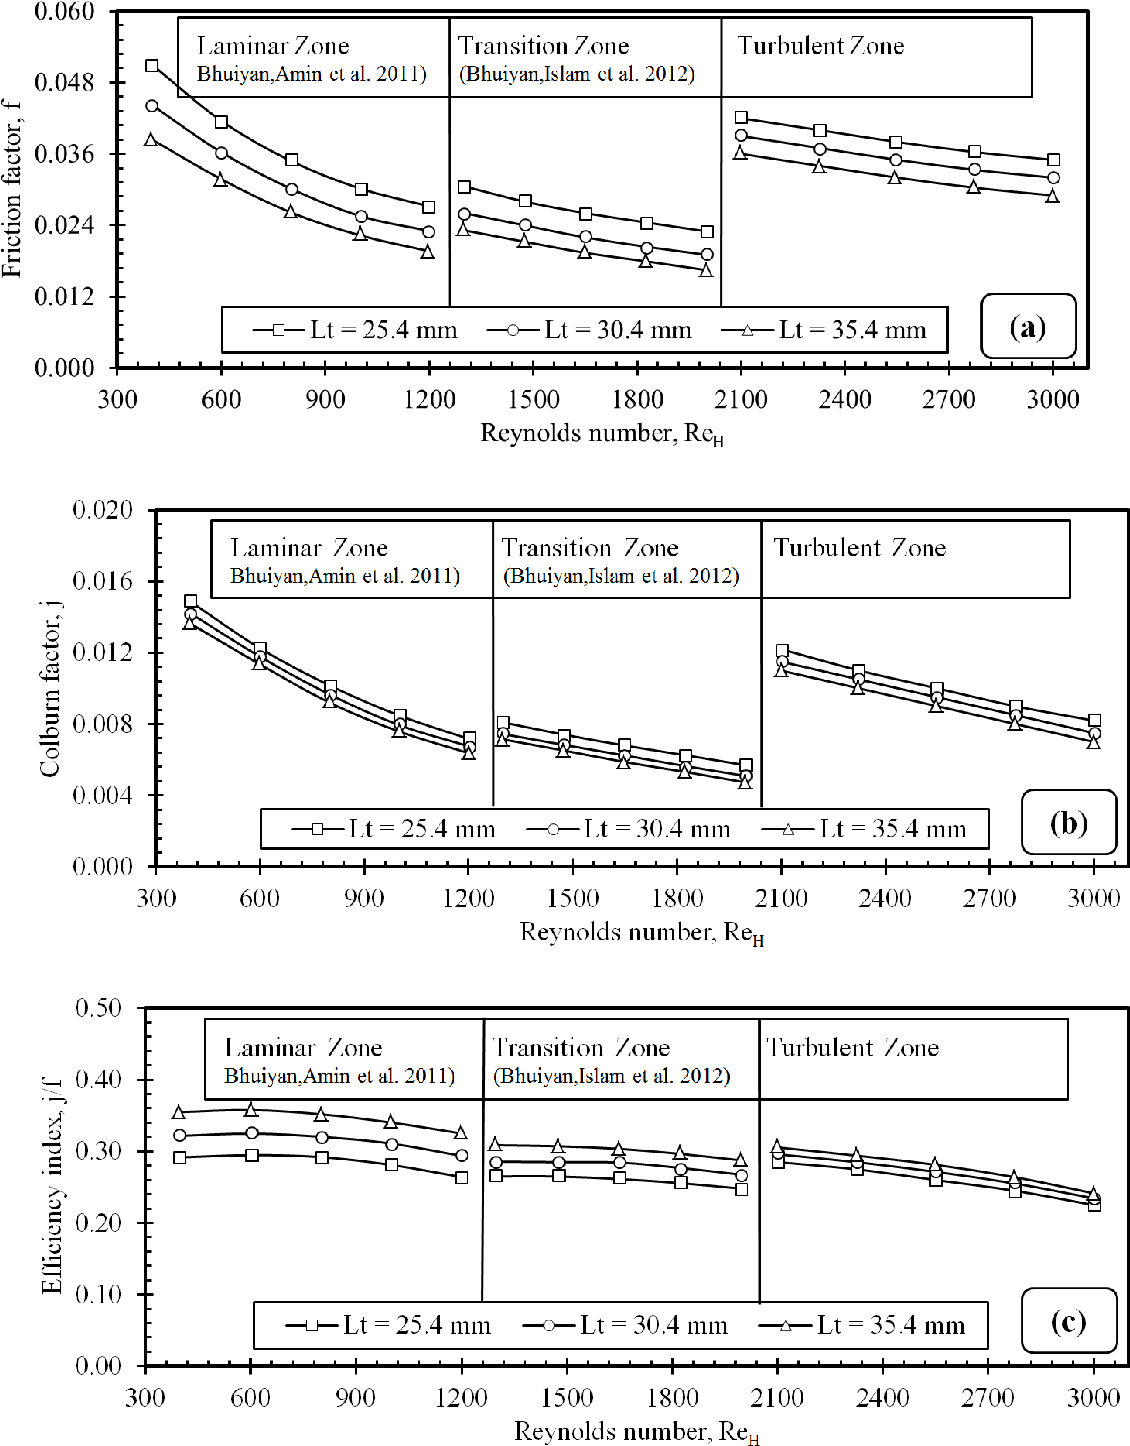 Plate Fin and Tube Heat Exchanger Modeling: Effects of Performance